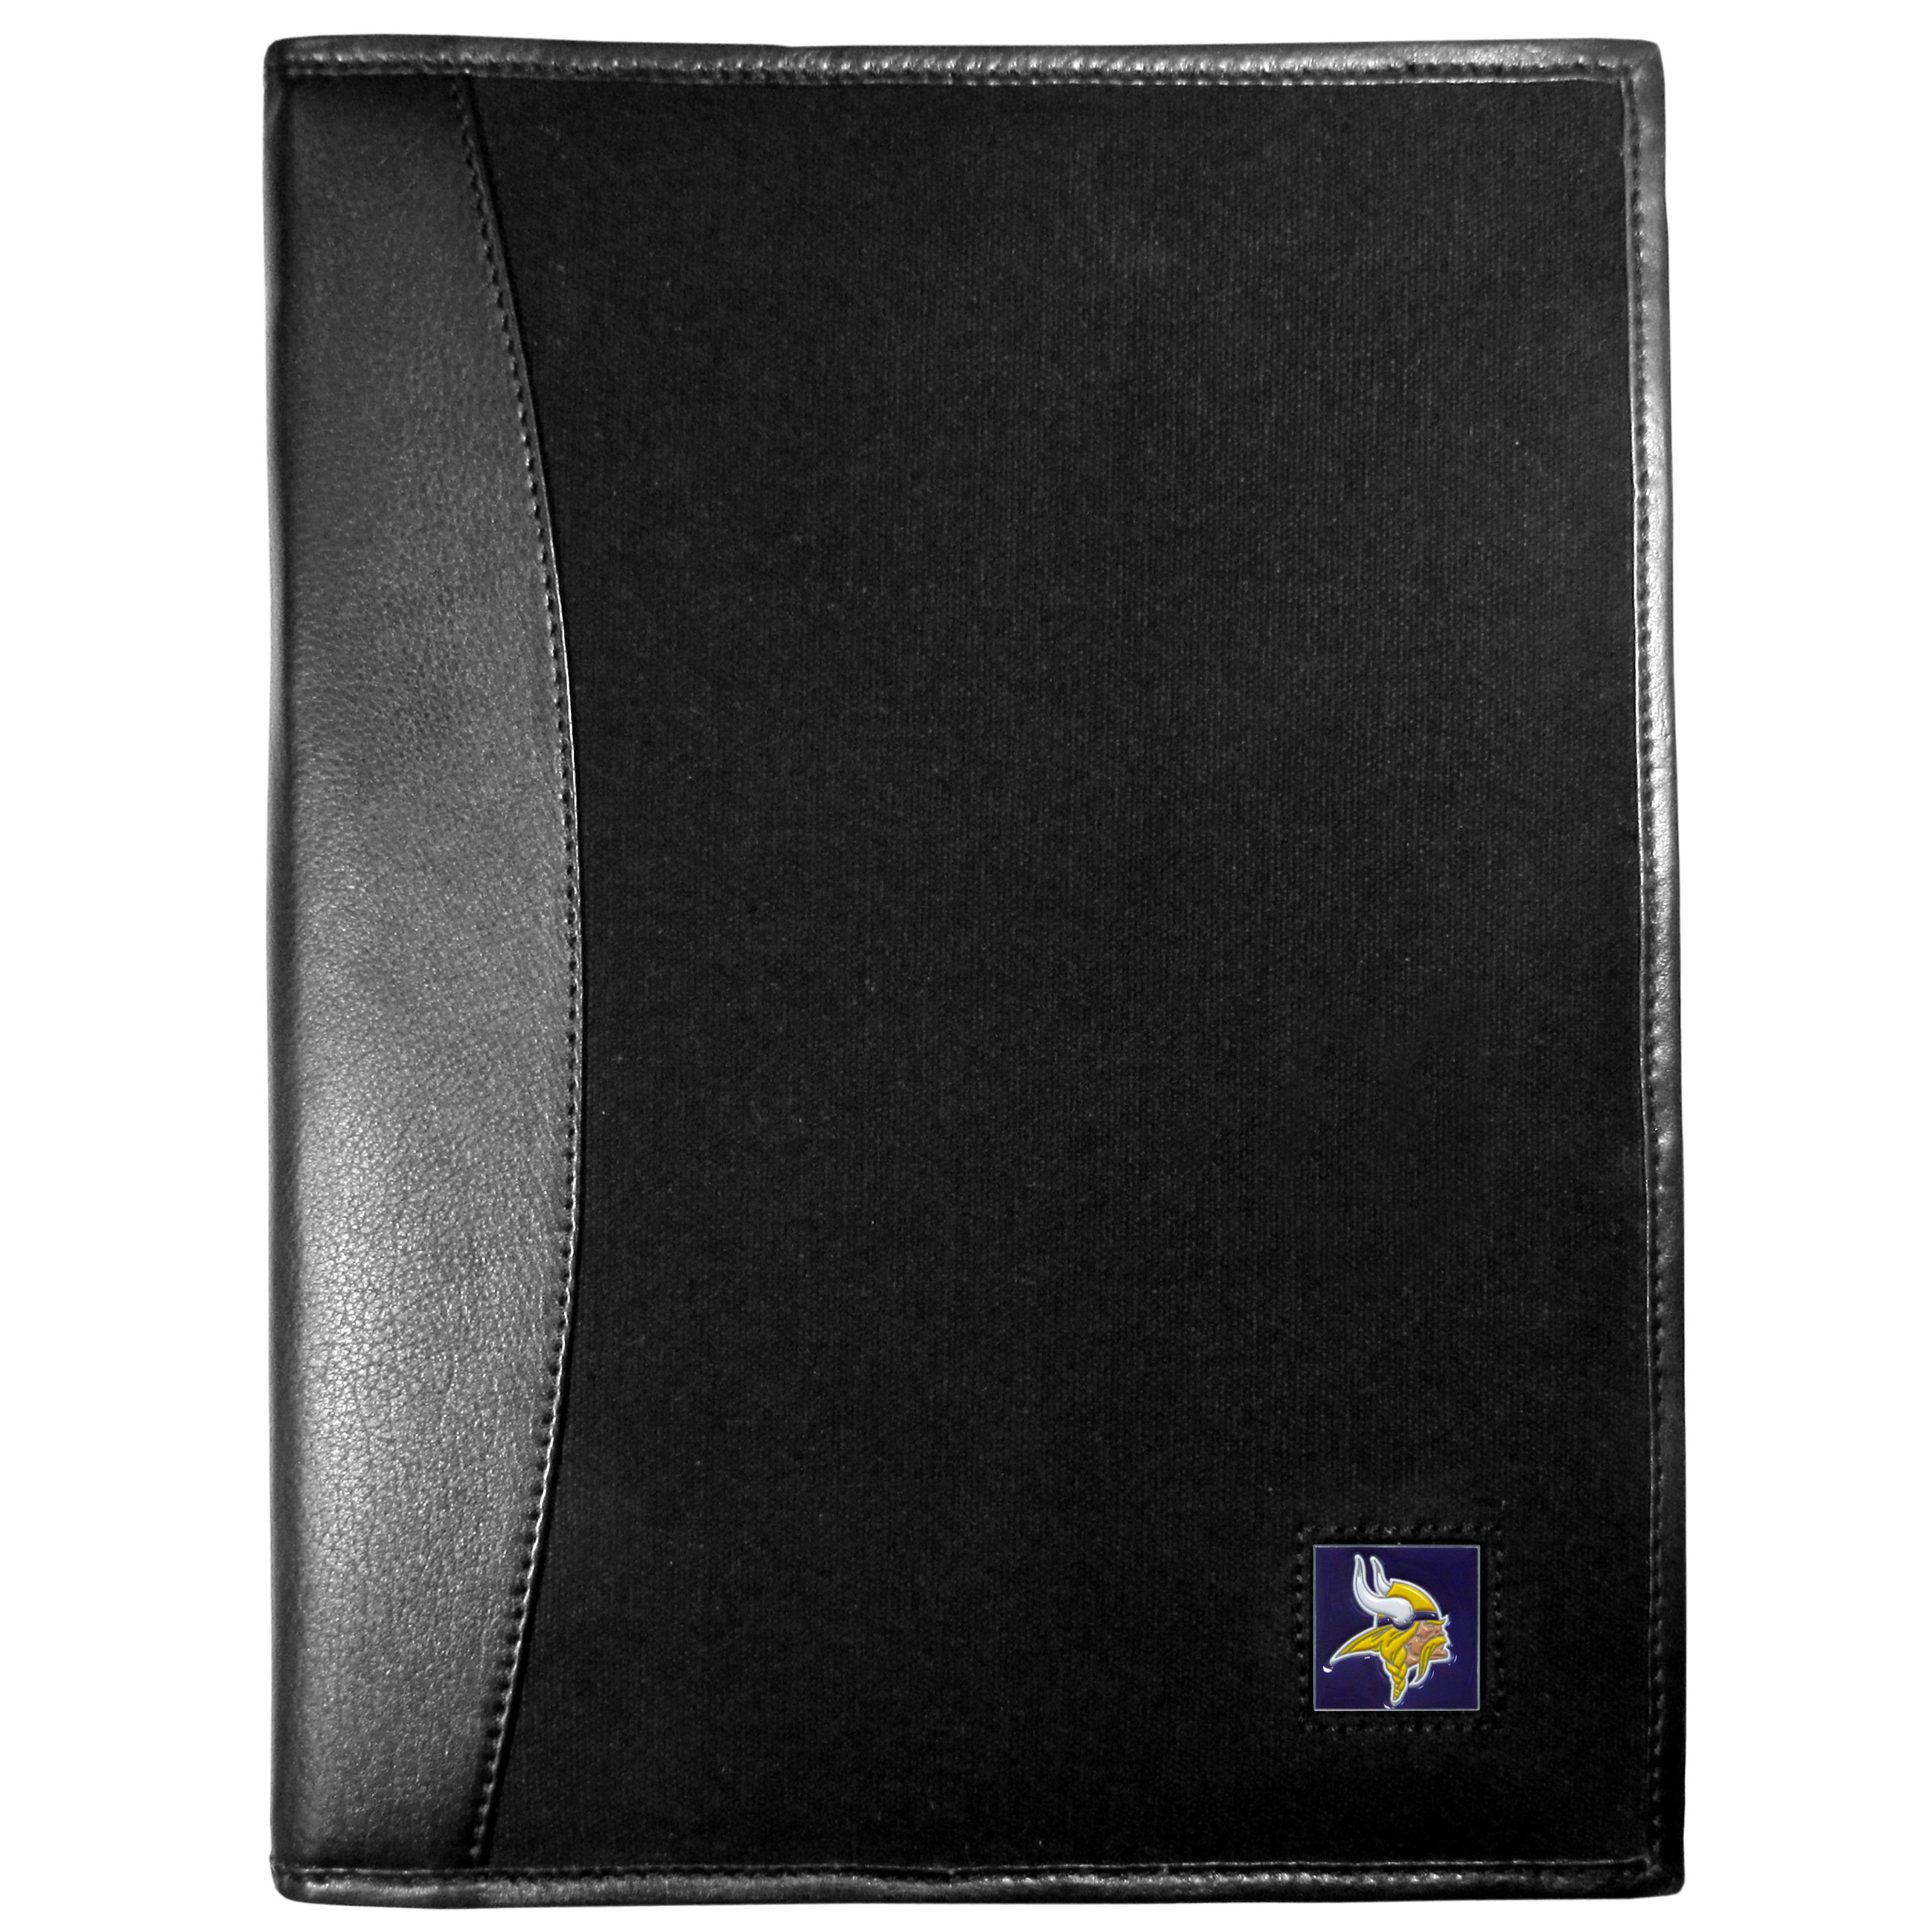 Minnesota Vikings Leather and Canvas Padfolio - Our leather and canvas padfolio perfectly blends form and function. The attractive portfolio is bound in fine grain leather with an attractive canvas finish and the interior is a soft nylon. This high quality business accessory also features a fully cast metal Minnesota Vikings emblem that is subtly set in the corner of the organizer. It is packed with features like 6 card slots for badges, business cards, hotel keys or credit cards and ID with a large pocket for loose papers and a writing tablet slot making it a must-have for the professional on the go.